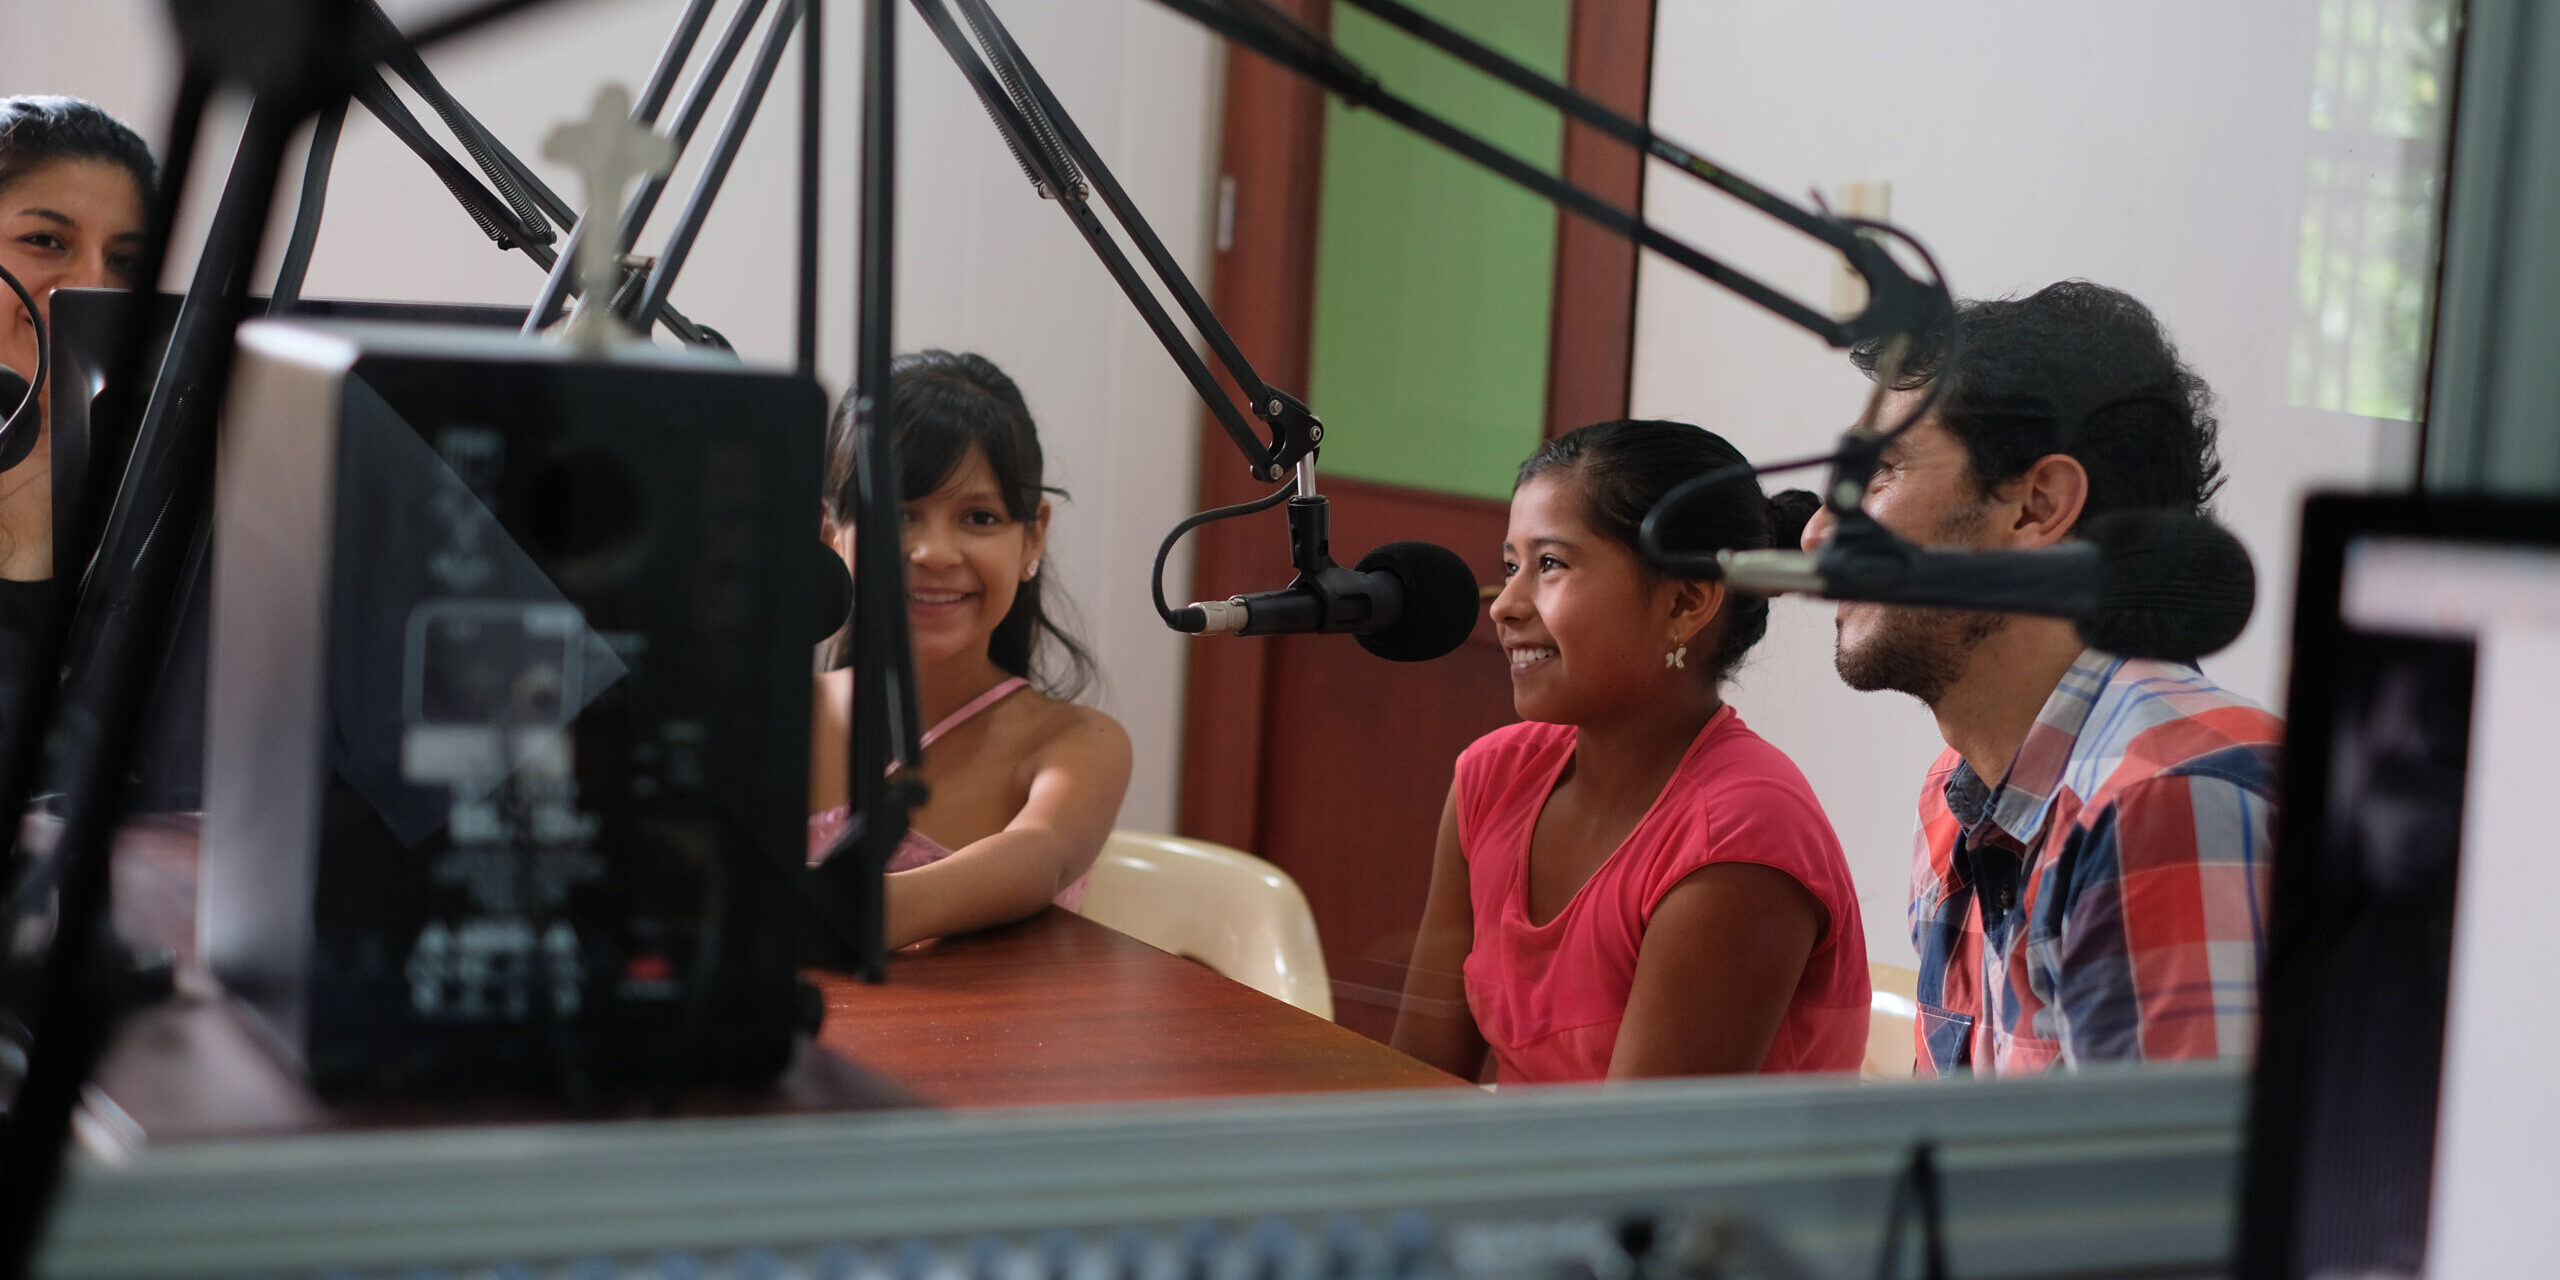 Four people including two children speaking into microphones around a table.